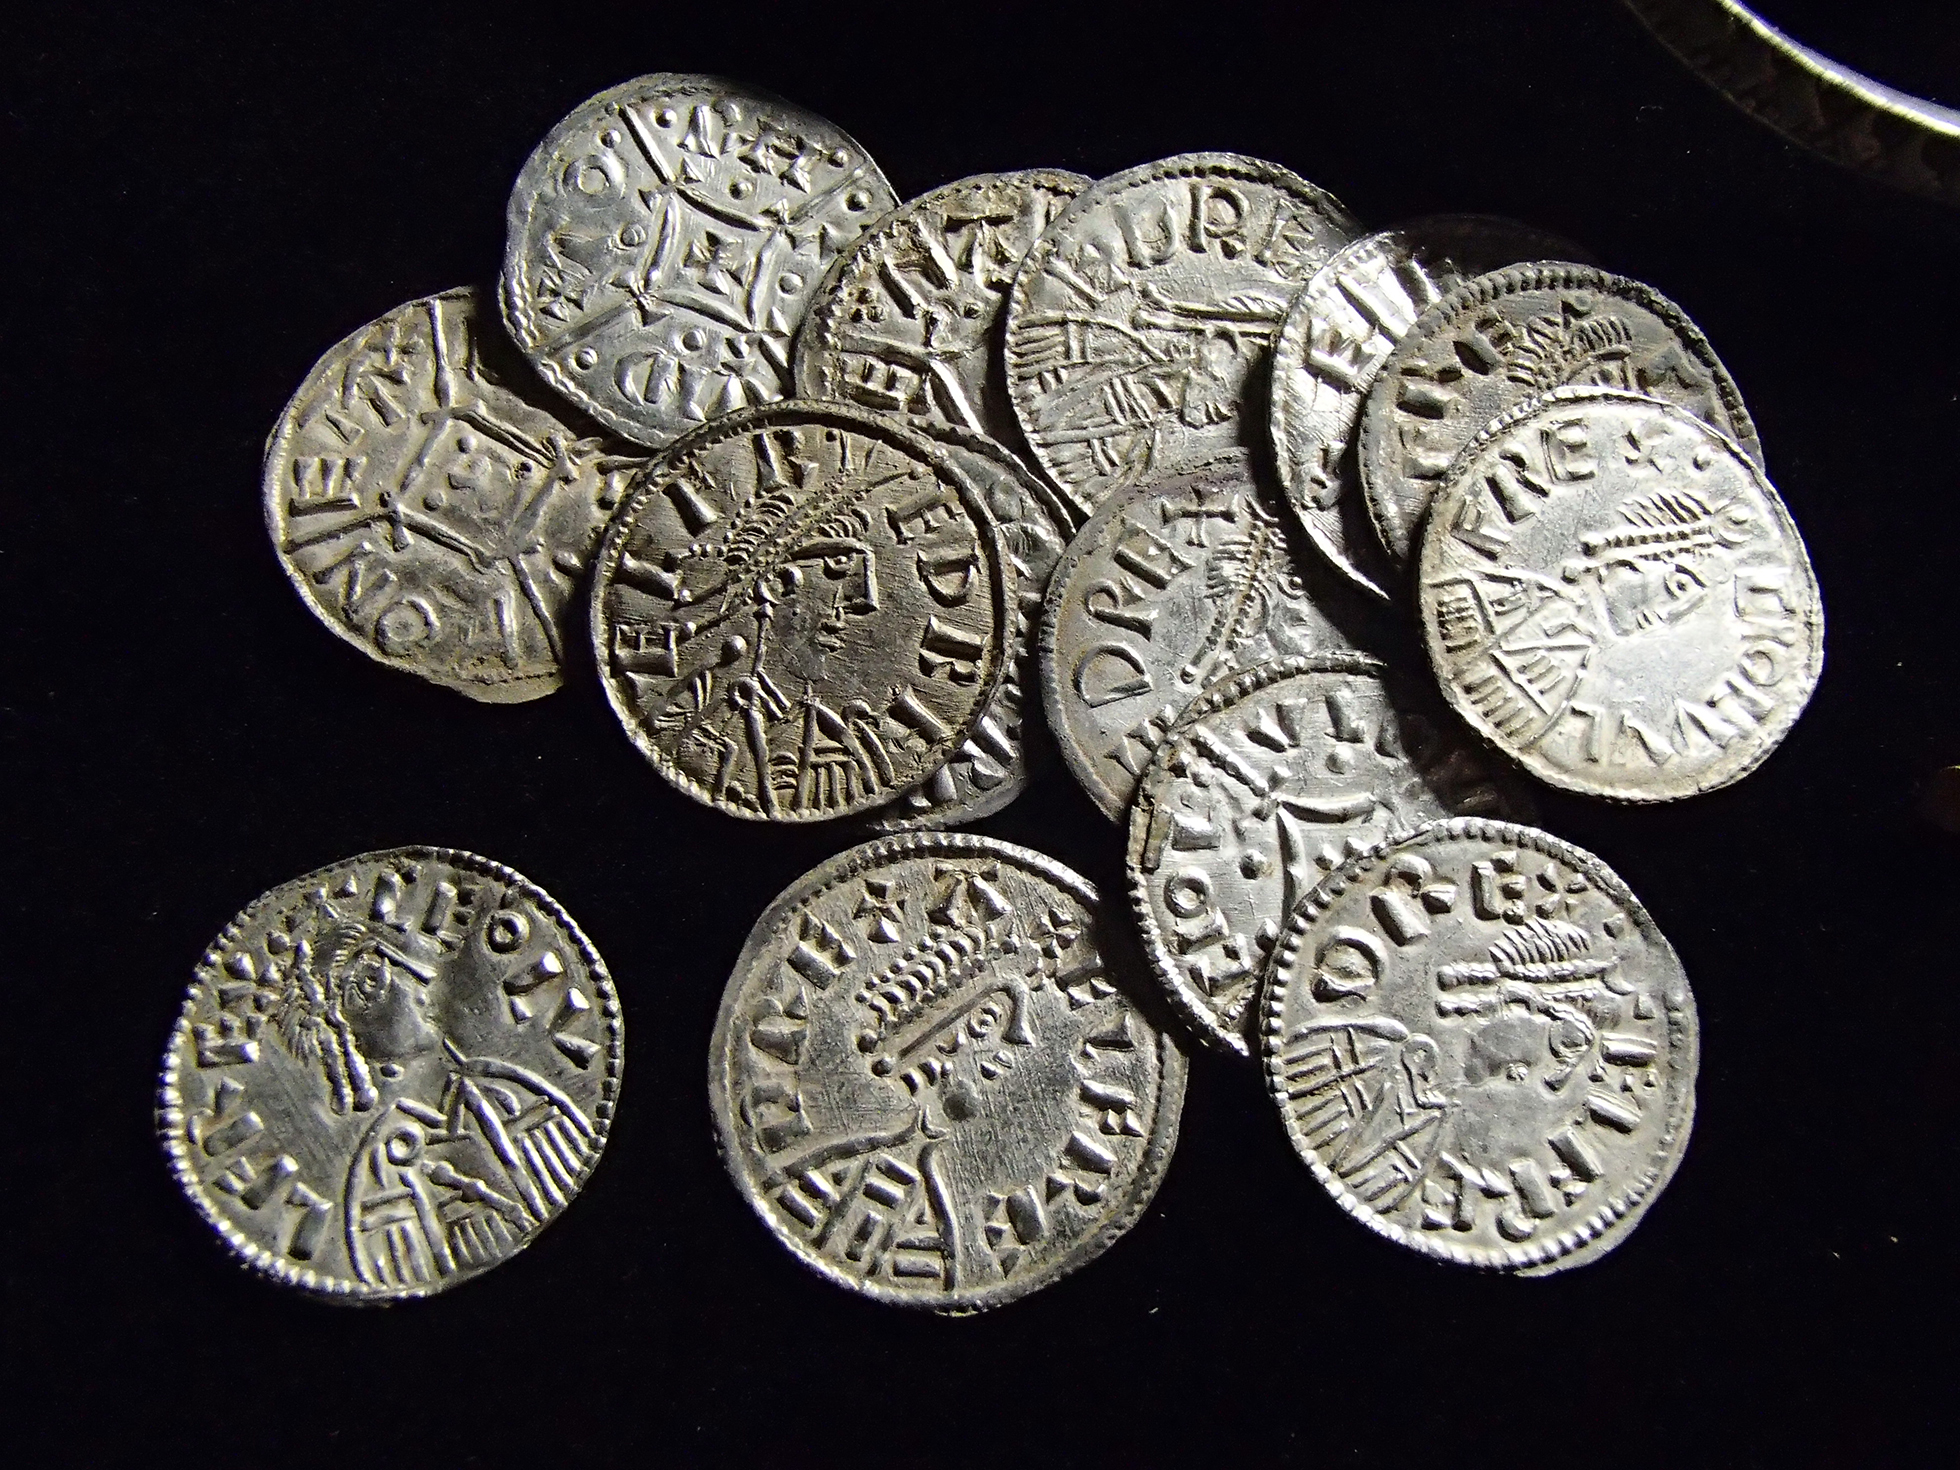 A selection of silver coins of Alfred and Ceolwulf II from the Watlington Hoard against a black background.